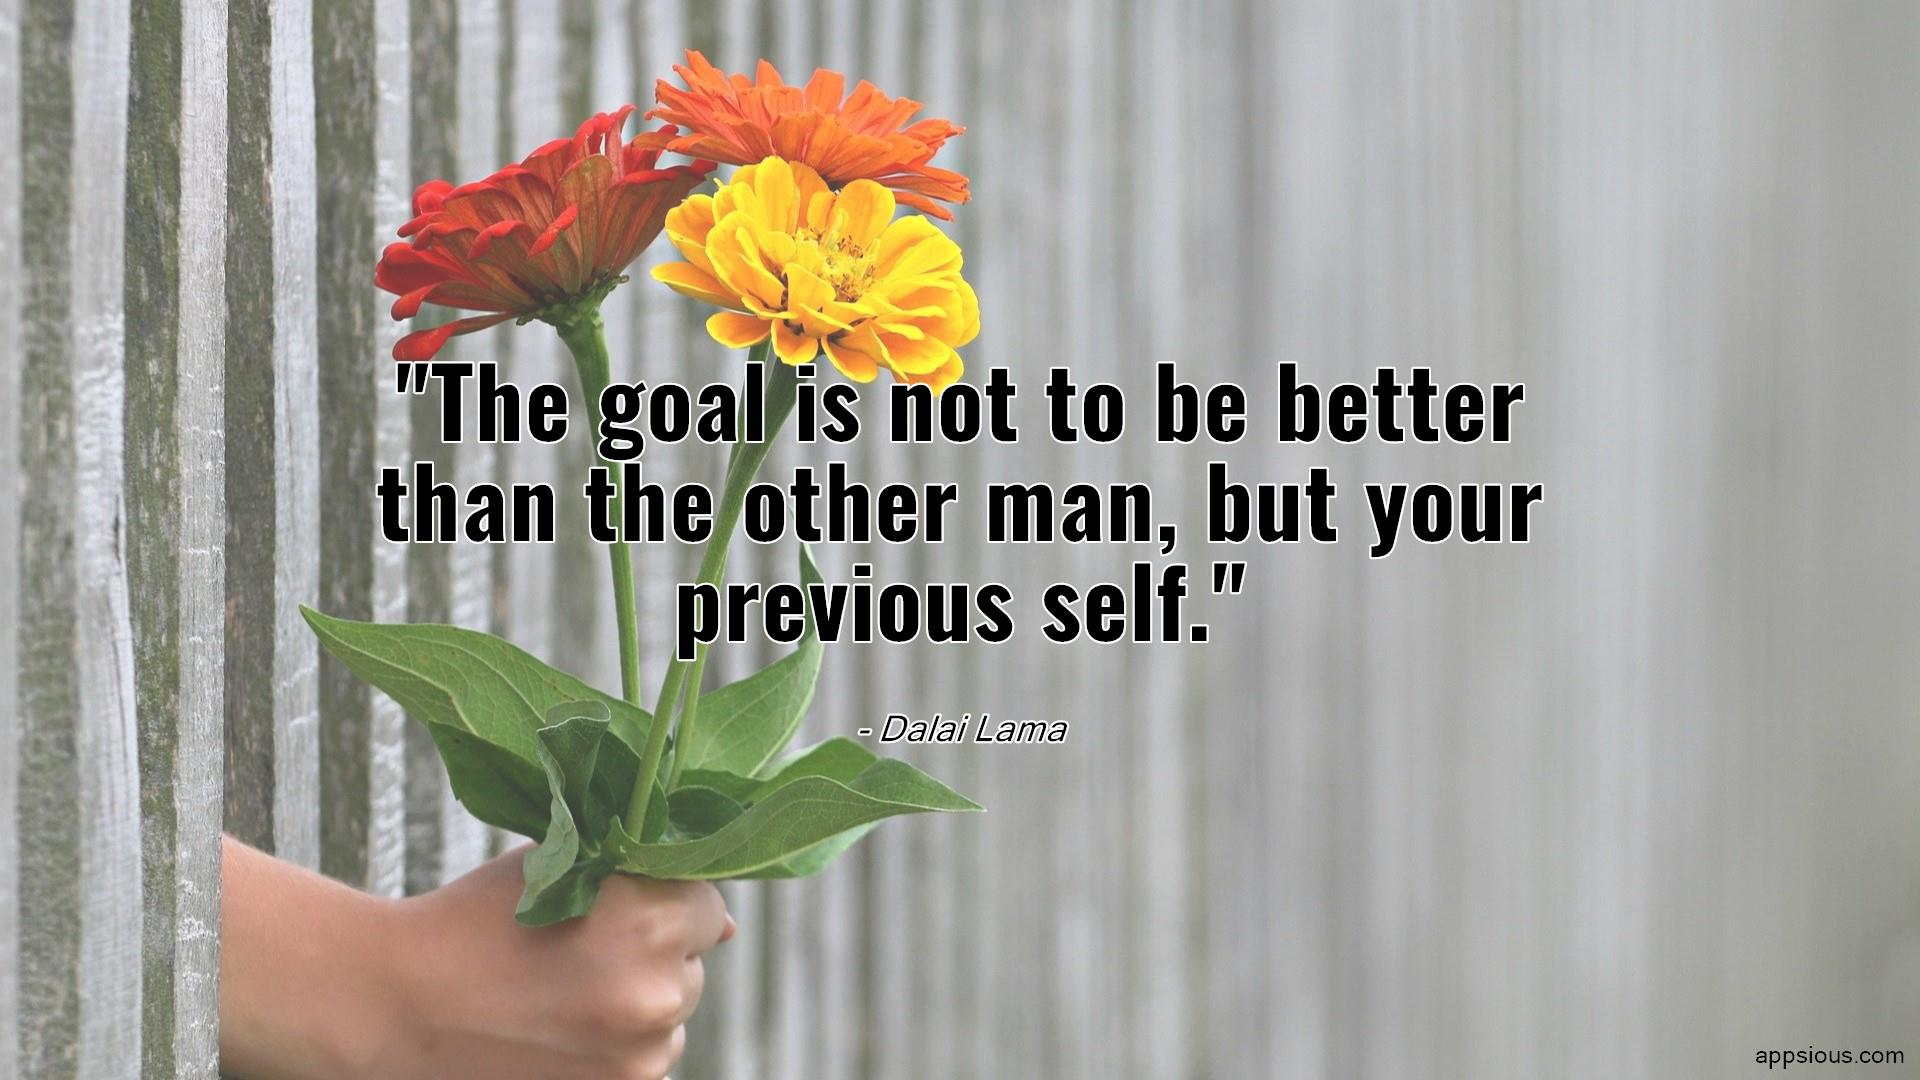 The goal is not to be better than the other man, but your previous self.